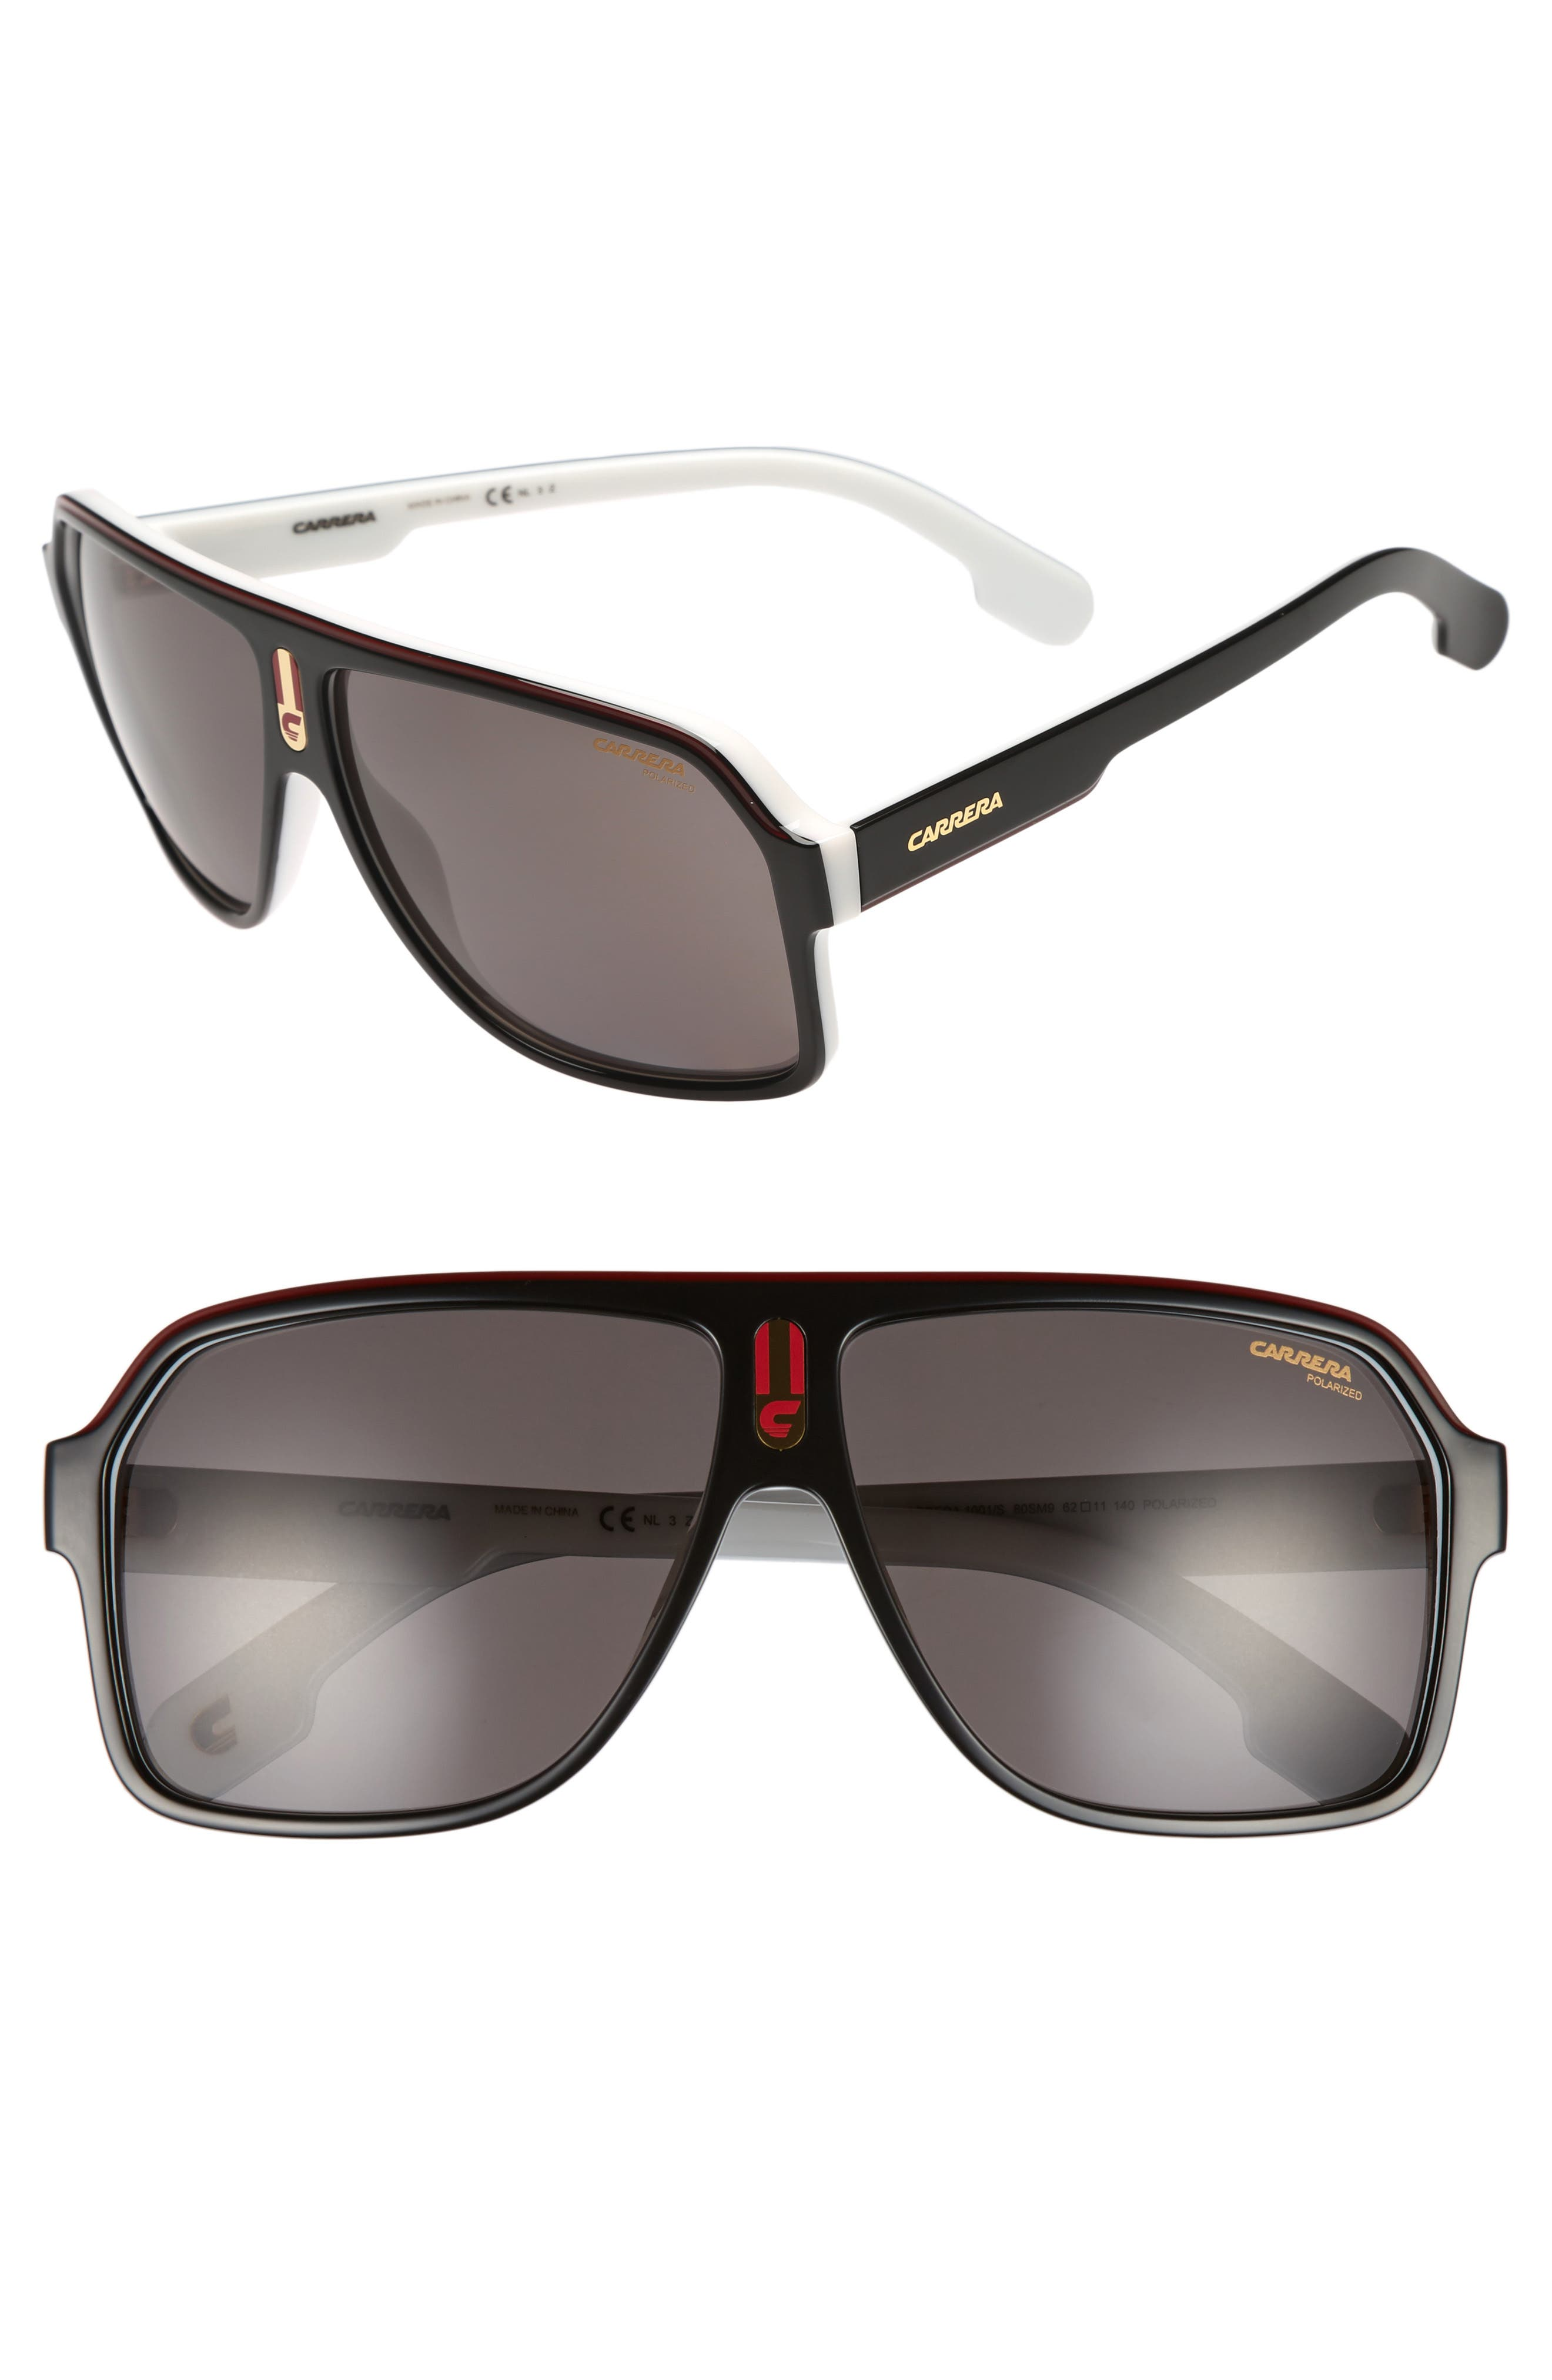 1001/S 62mm Sunglasses,                             Main thumbnail 1, color,                             Black White/ Gray Polarized